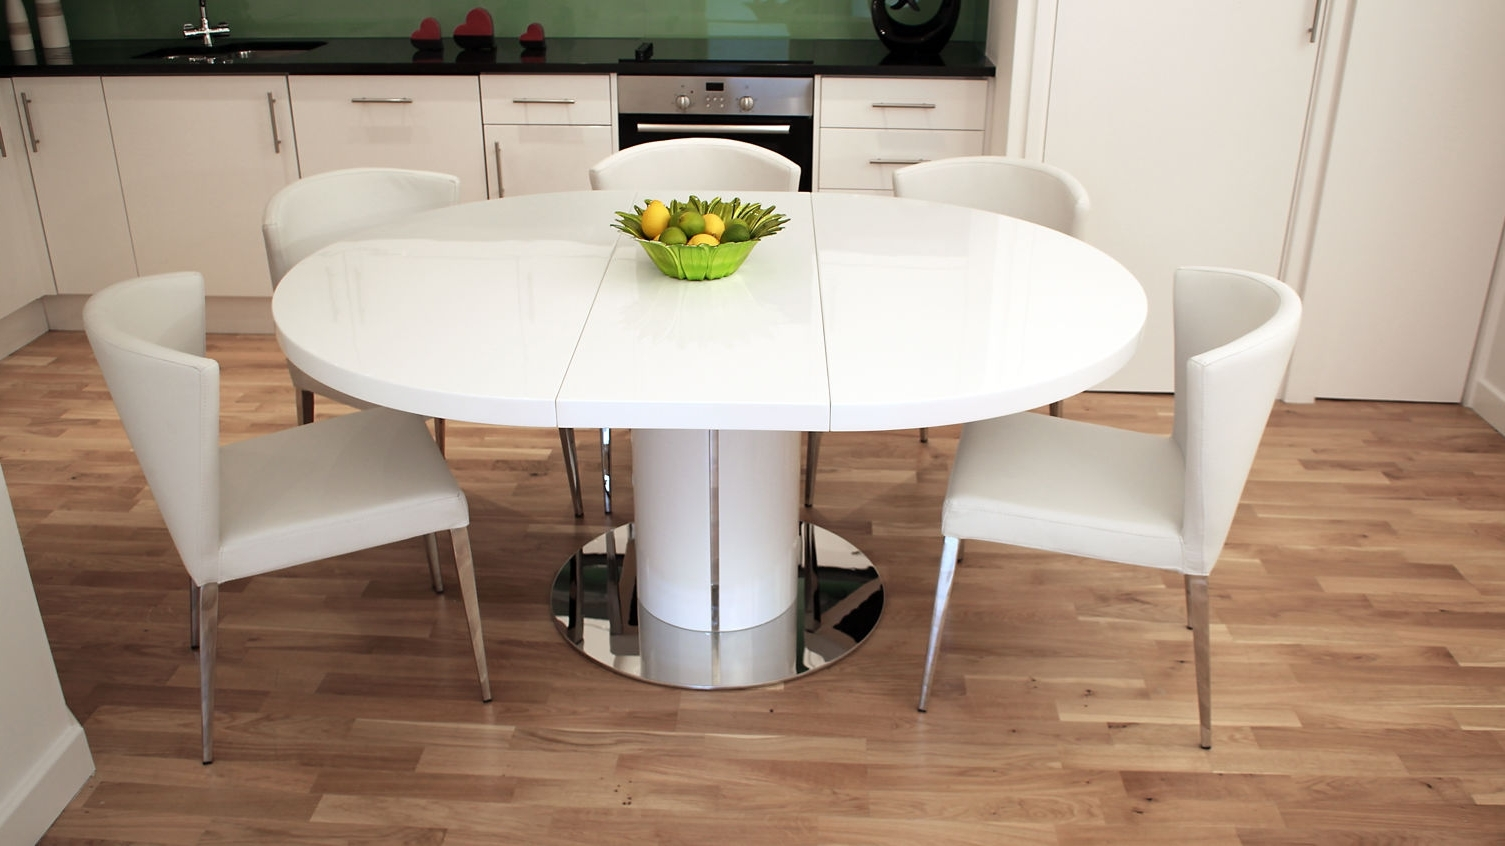 Trendy 6 Seat Round Dining Tables Throughout Diy Painting White Round Dining Table — The Home Redesign (View 21 of 25)